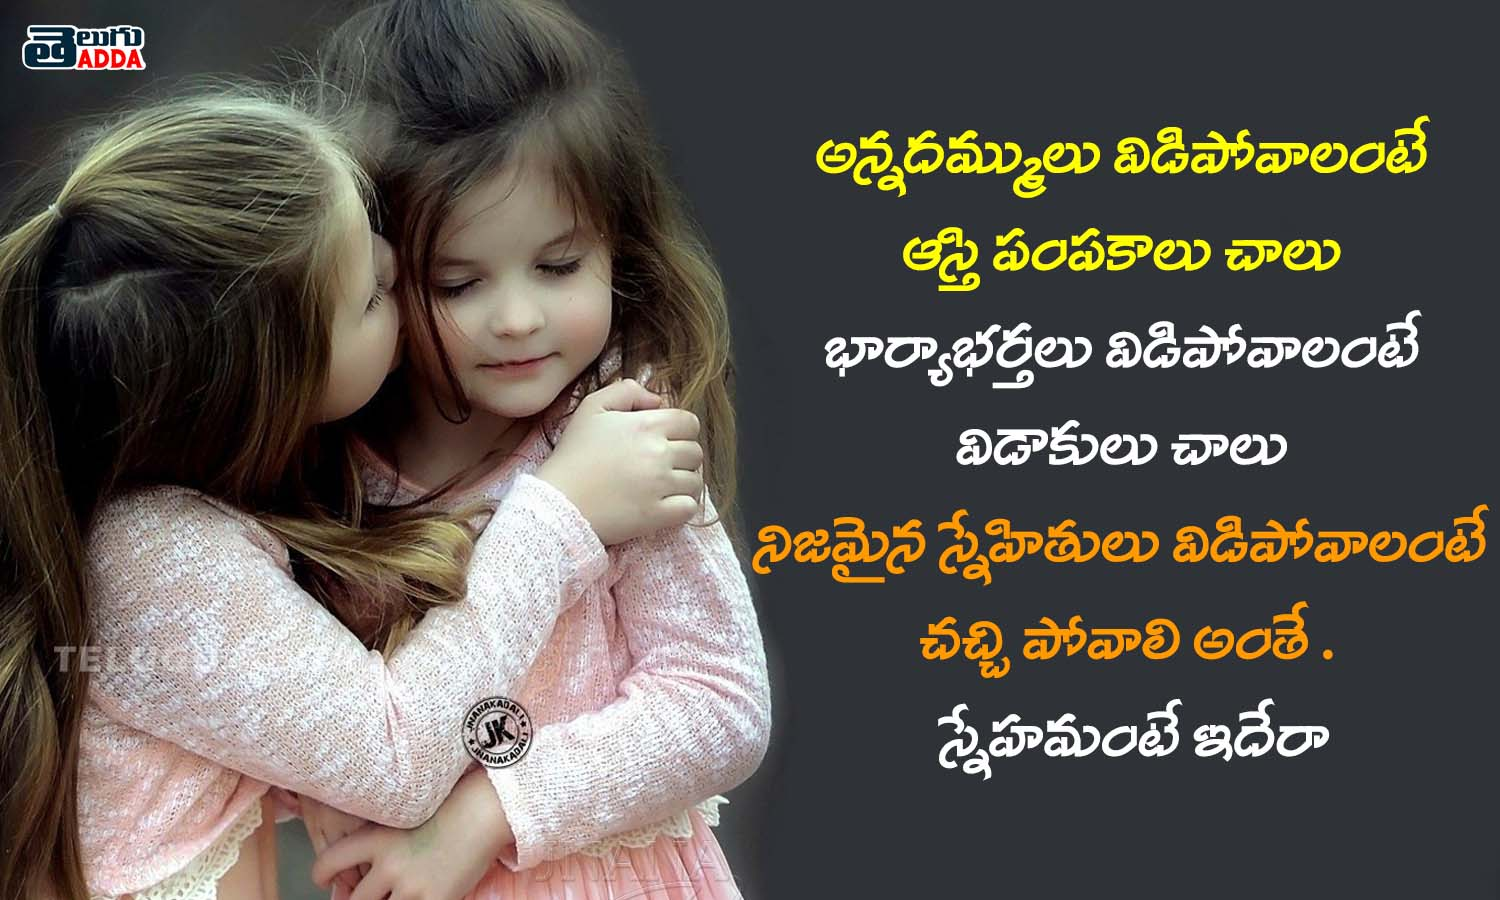 Friendship day telugu quotes Wishes Greetings 2020